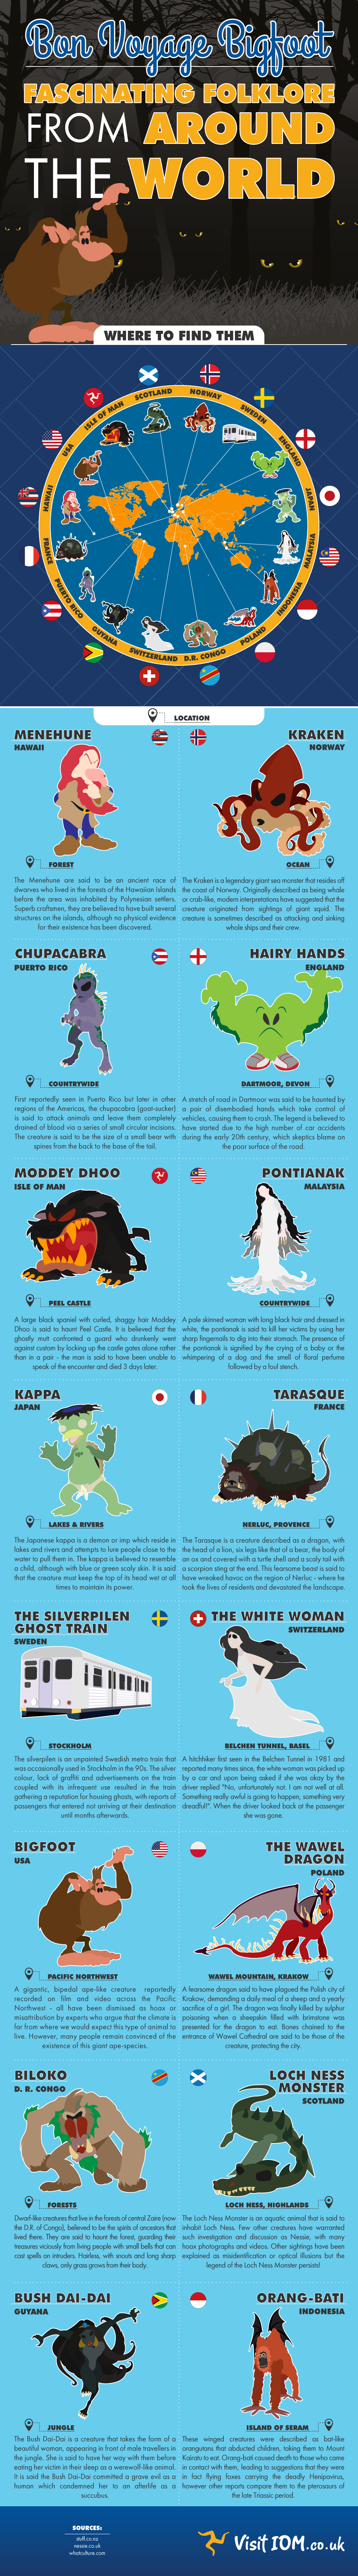 Beyond Bigfoot: Fascinating Folklore From Around The World #Infographic